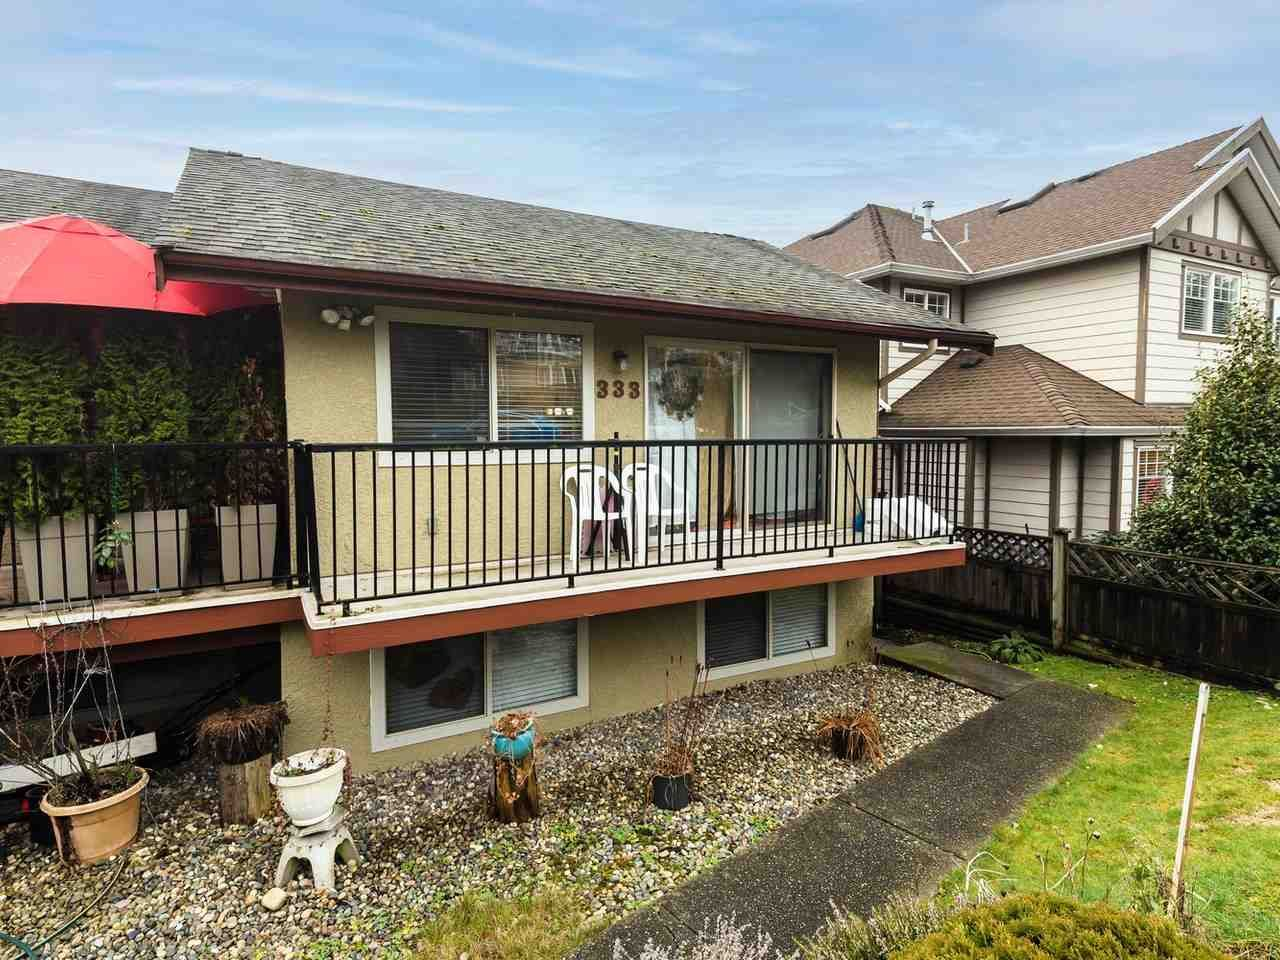 Main Photo: 333 E 5TH STREET in : Lower Lonsdale 1/2 Duplex for sale : MLS®# R2529429